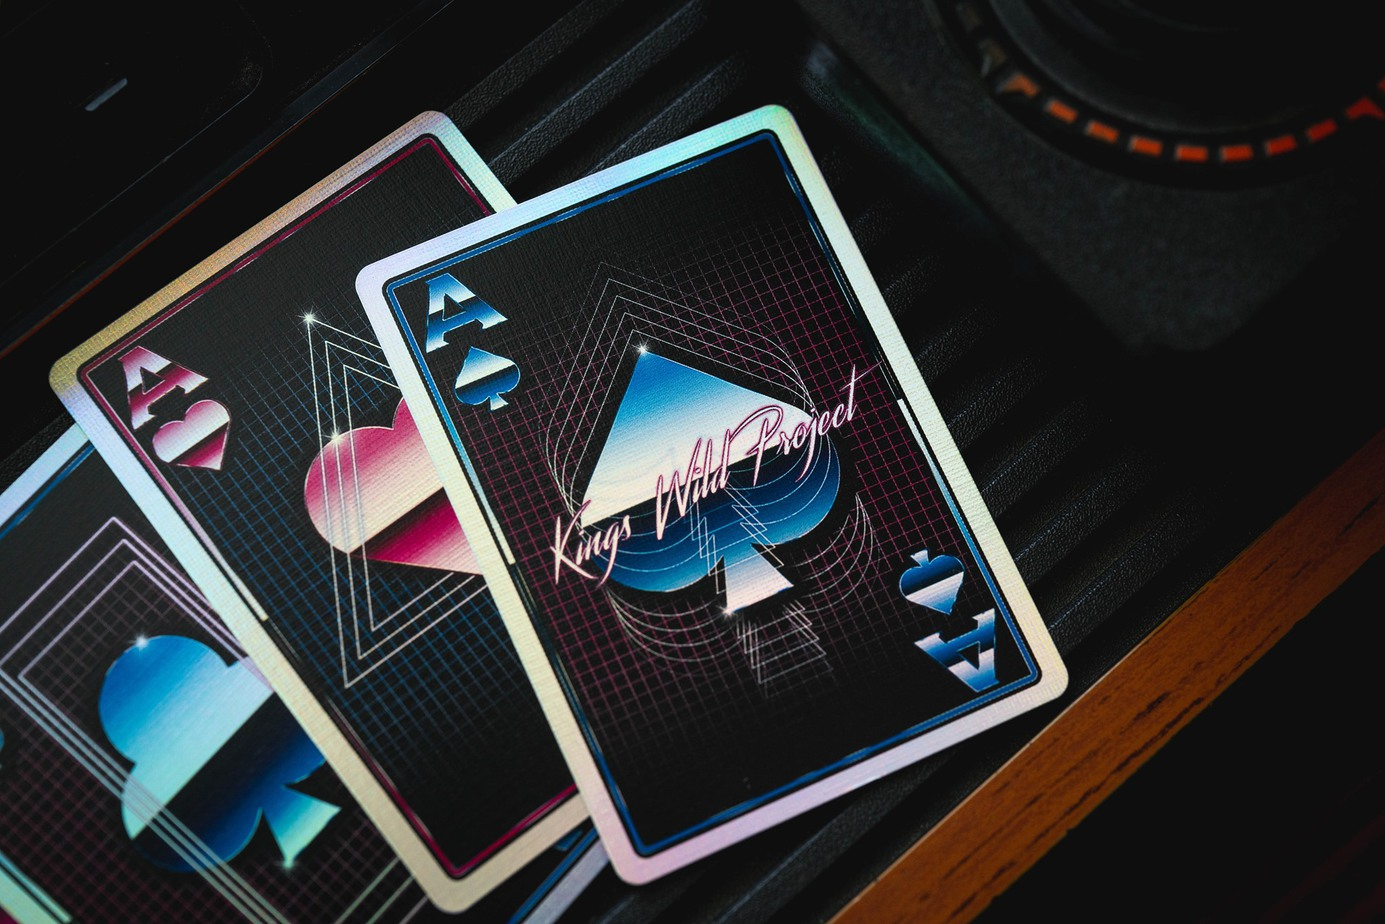 80's vintage playing cards laying on table face up